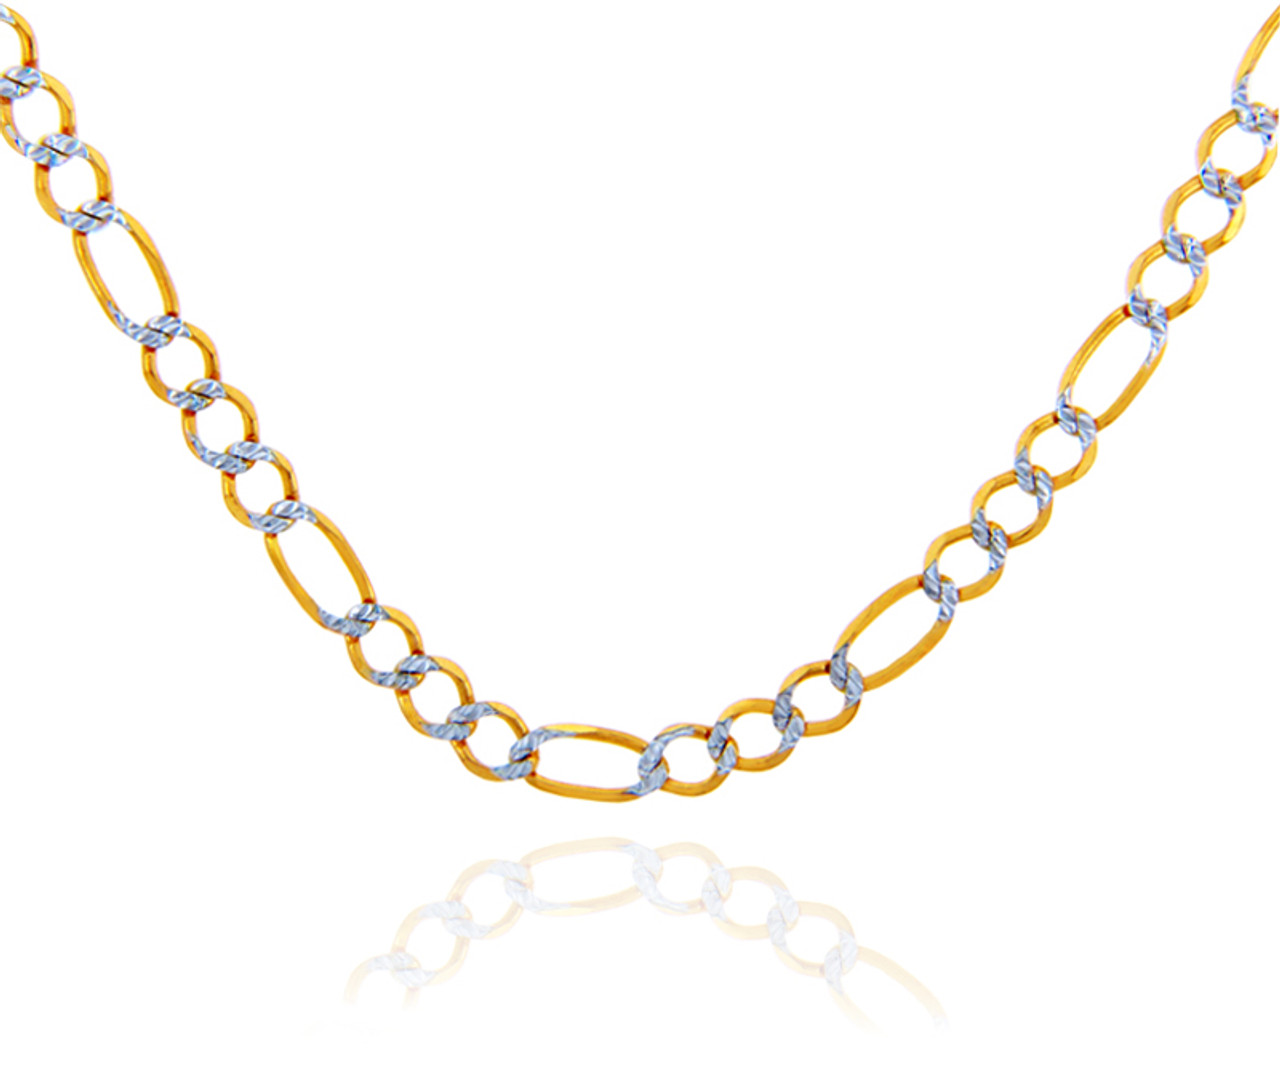 com products pid designer jpearls gold glod jpearlscom chains pearl buy chain